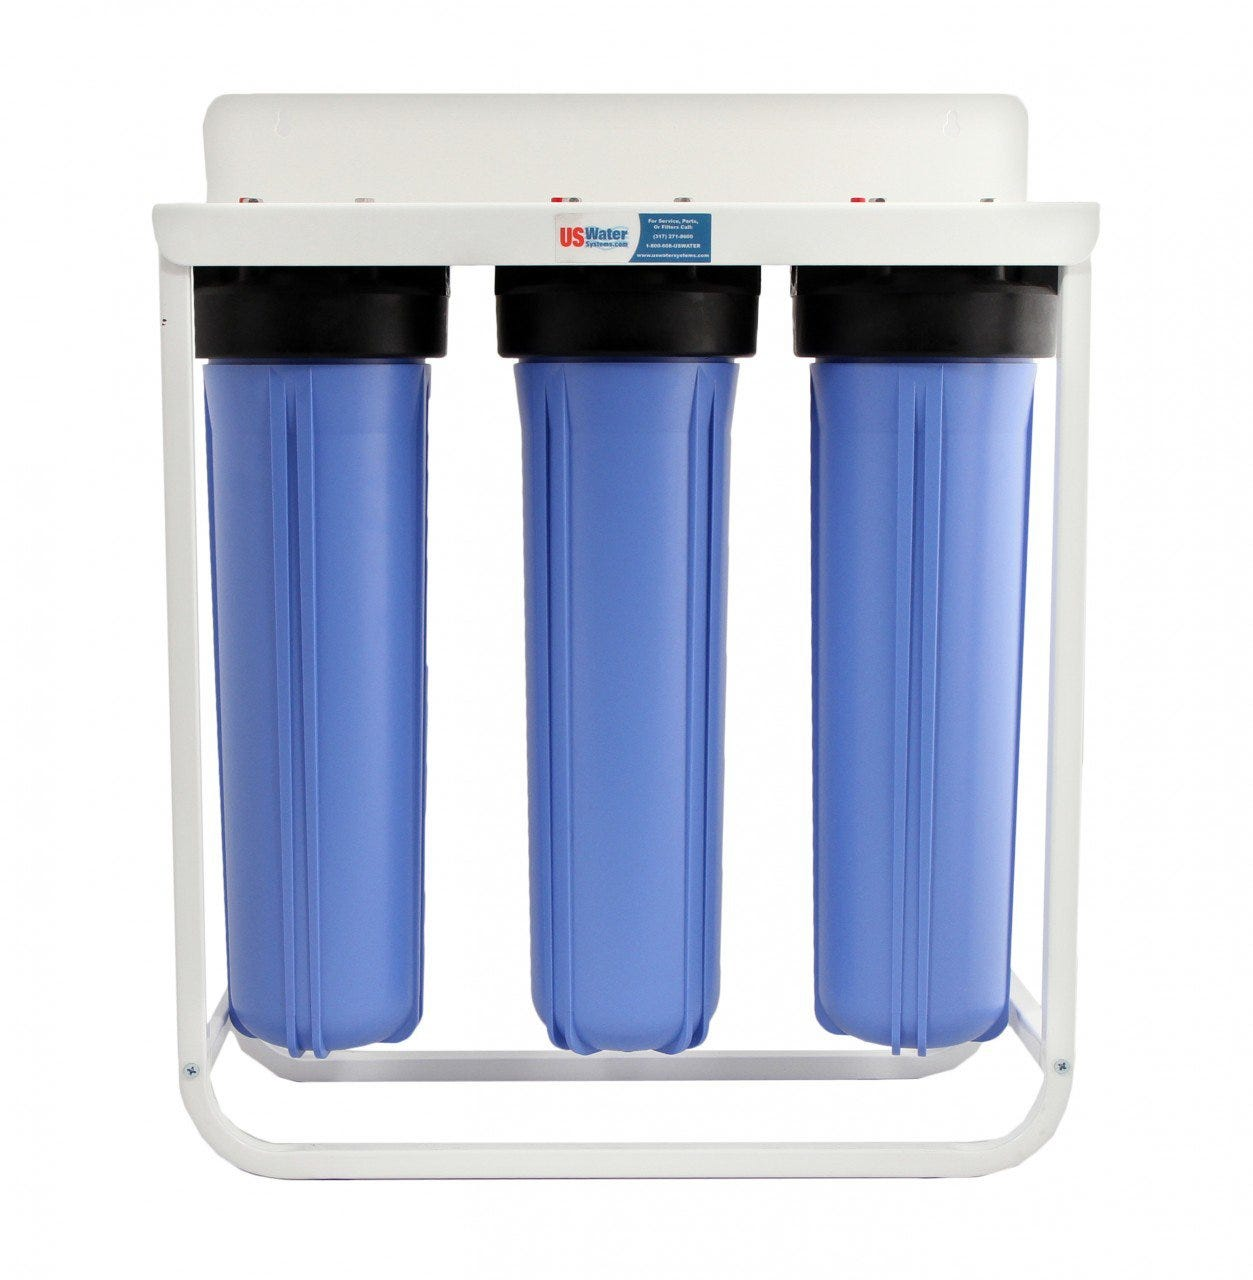 US Water CraftMaster Floor Mount Triple Filtration System